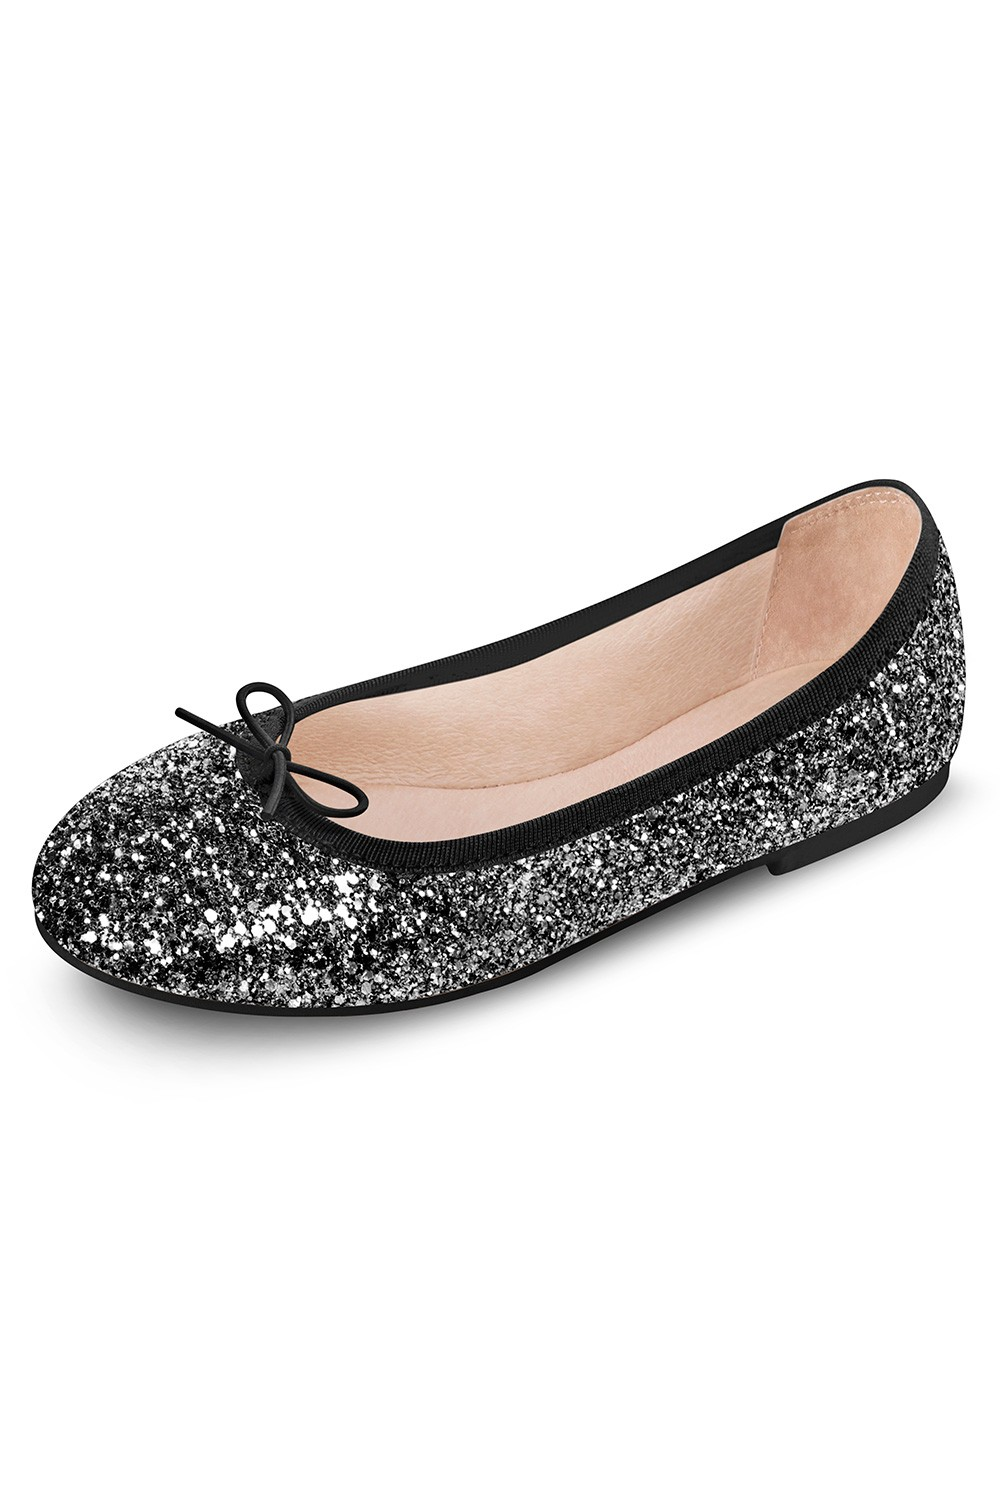 Sparkle - Tween Girls Fashion Shoes